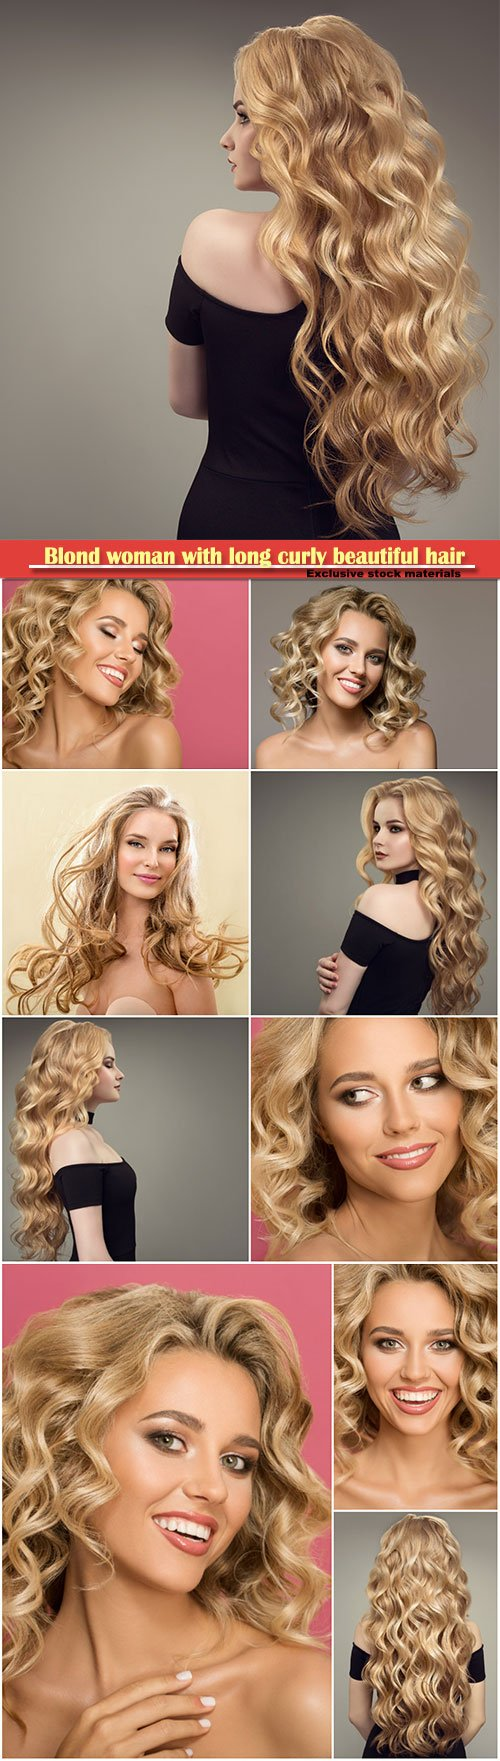 Blond woman with long curly beautiful hair